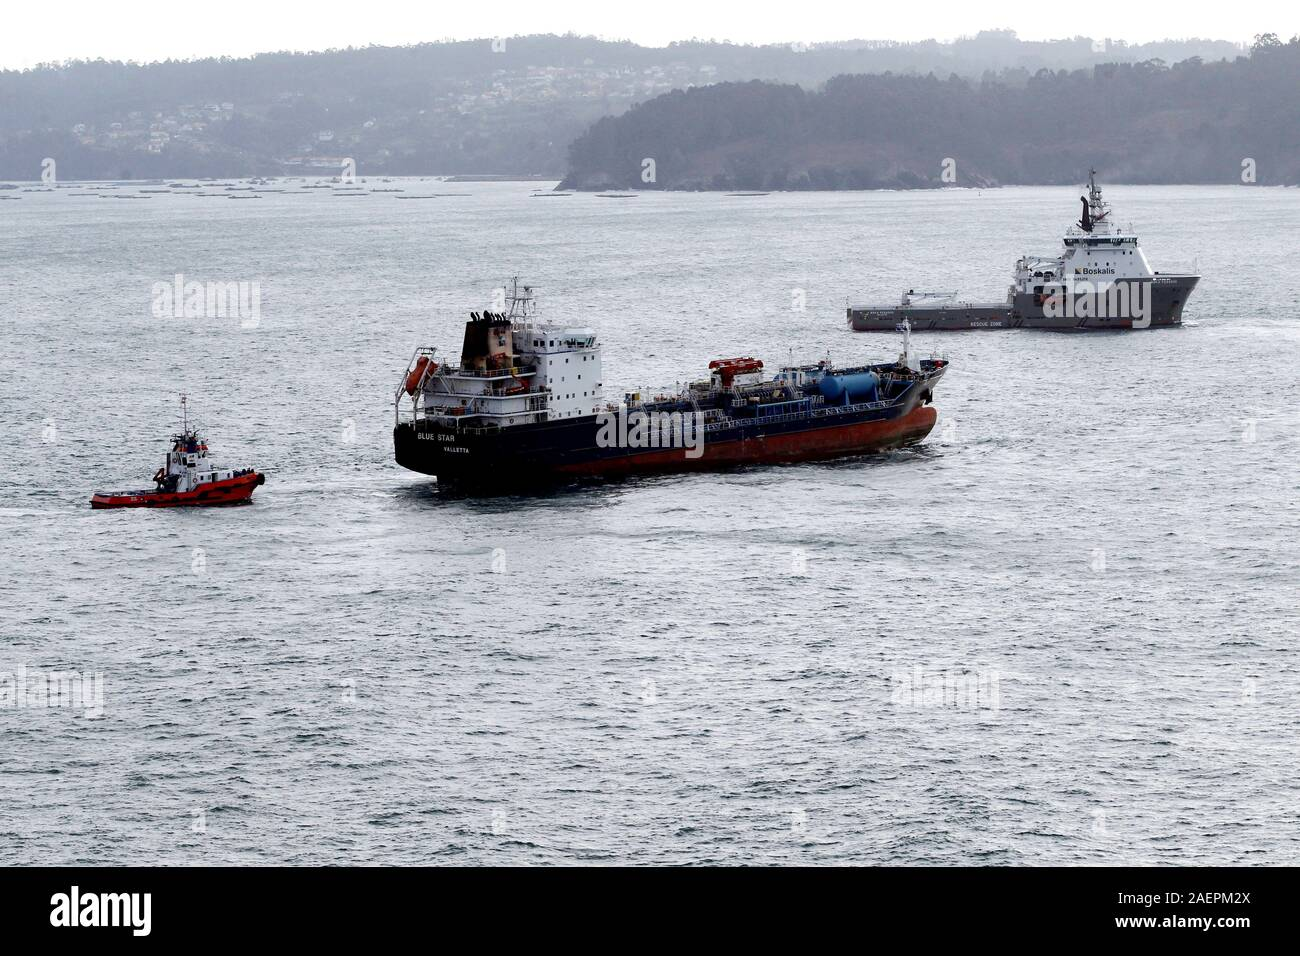 La Coruna, Spain. 10th Dec, 2019. Several tugboats start the transfer to Ferrol, Galicia, of stranded Malta-flagged chemical ship Blue Star in Ares, La Coruna, Spain, 10 December 2019. The ship remained stranded since? 22 November, when it run aground during harsh weather conditions. Credit: EFE News Agency/Alamy Live News Stock Photo